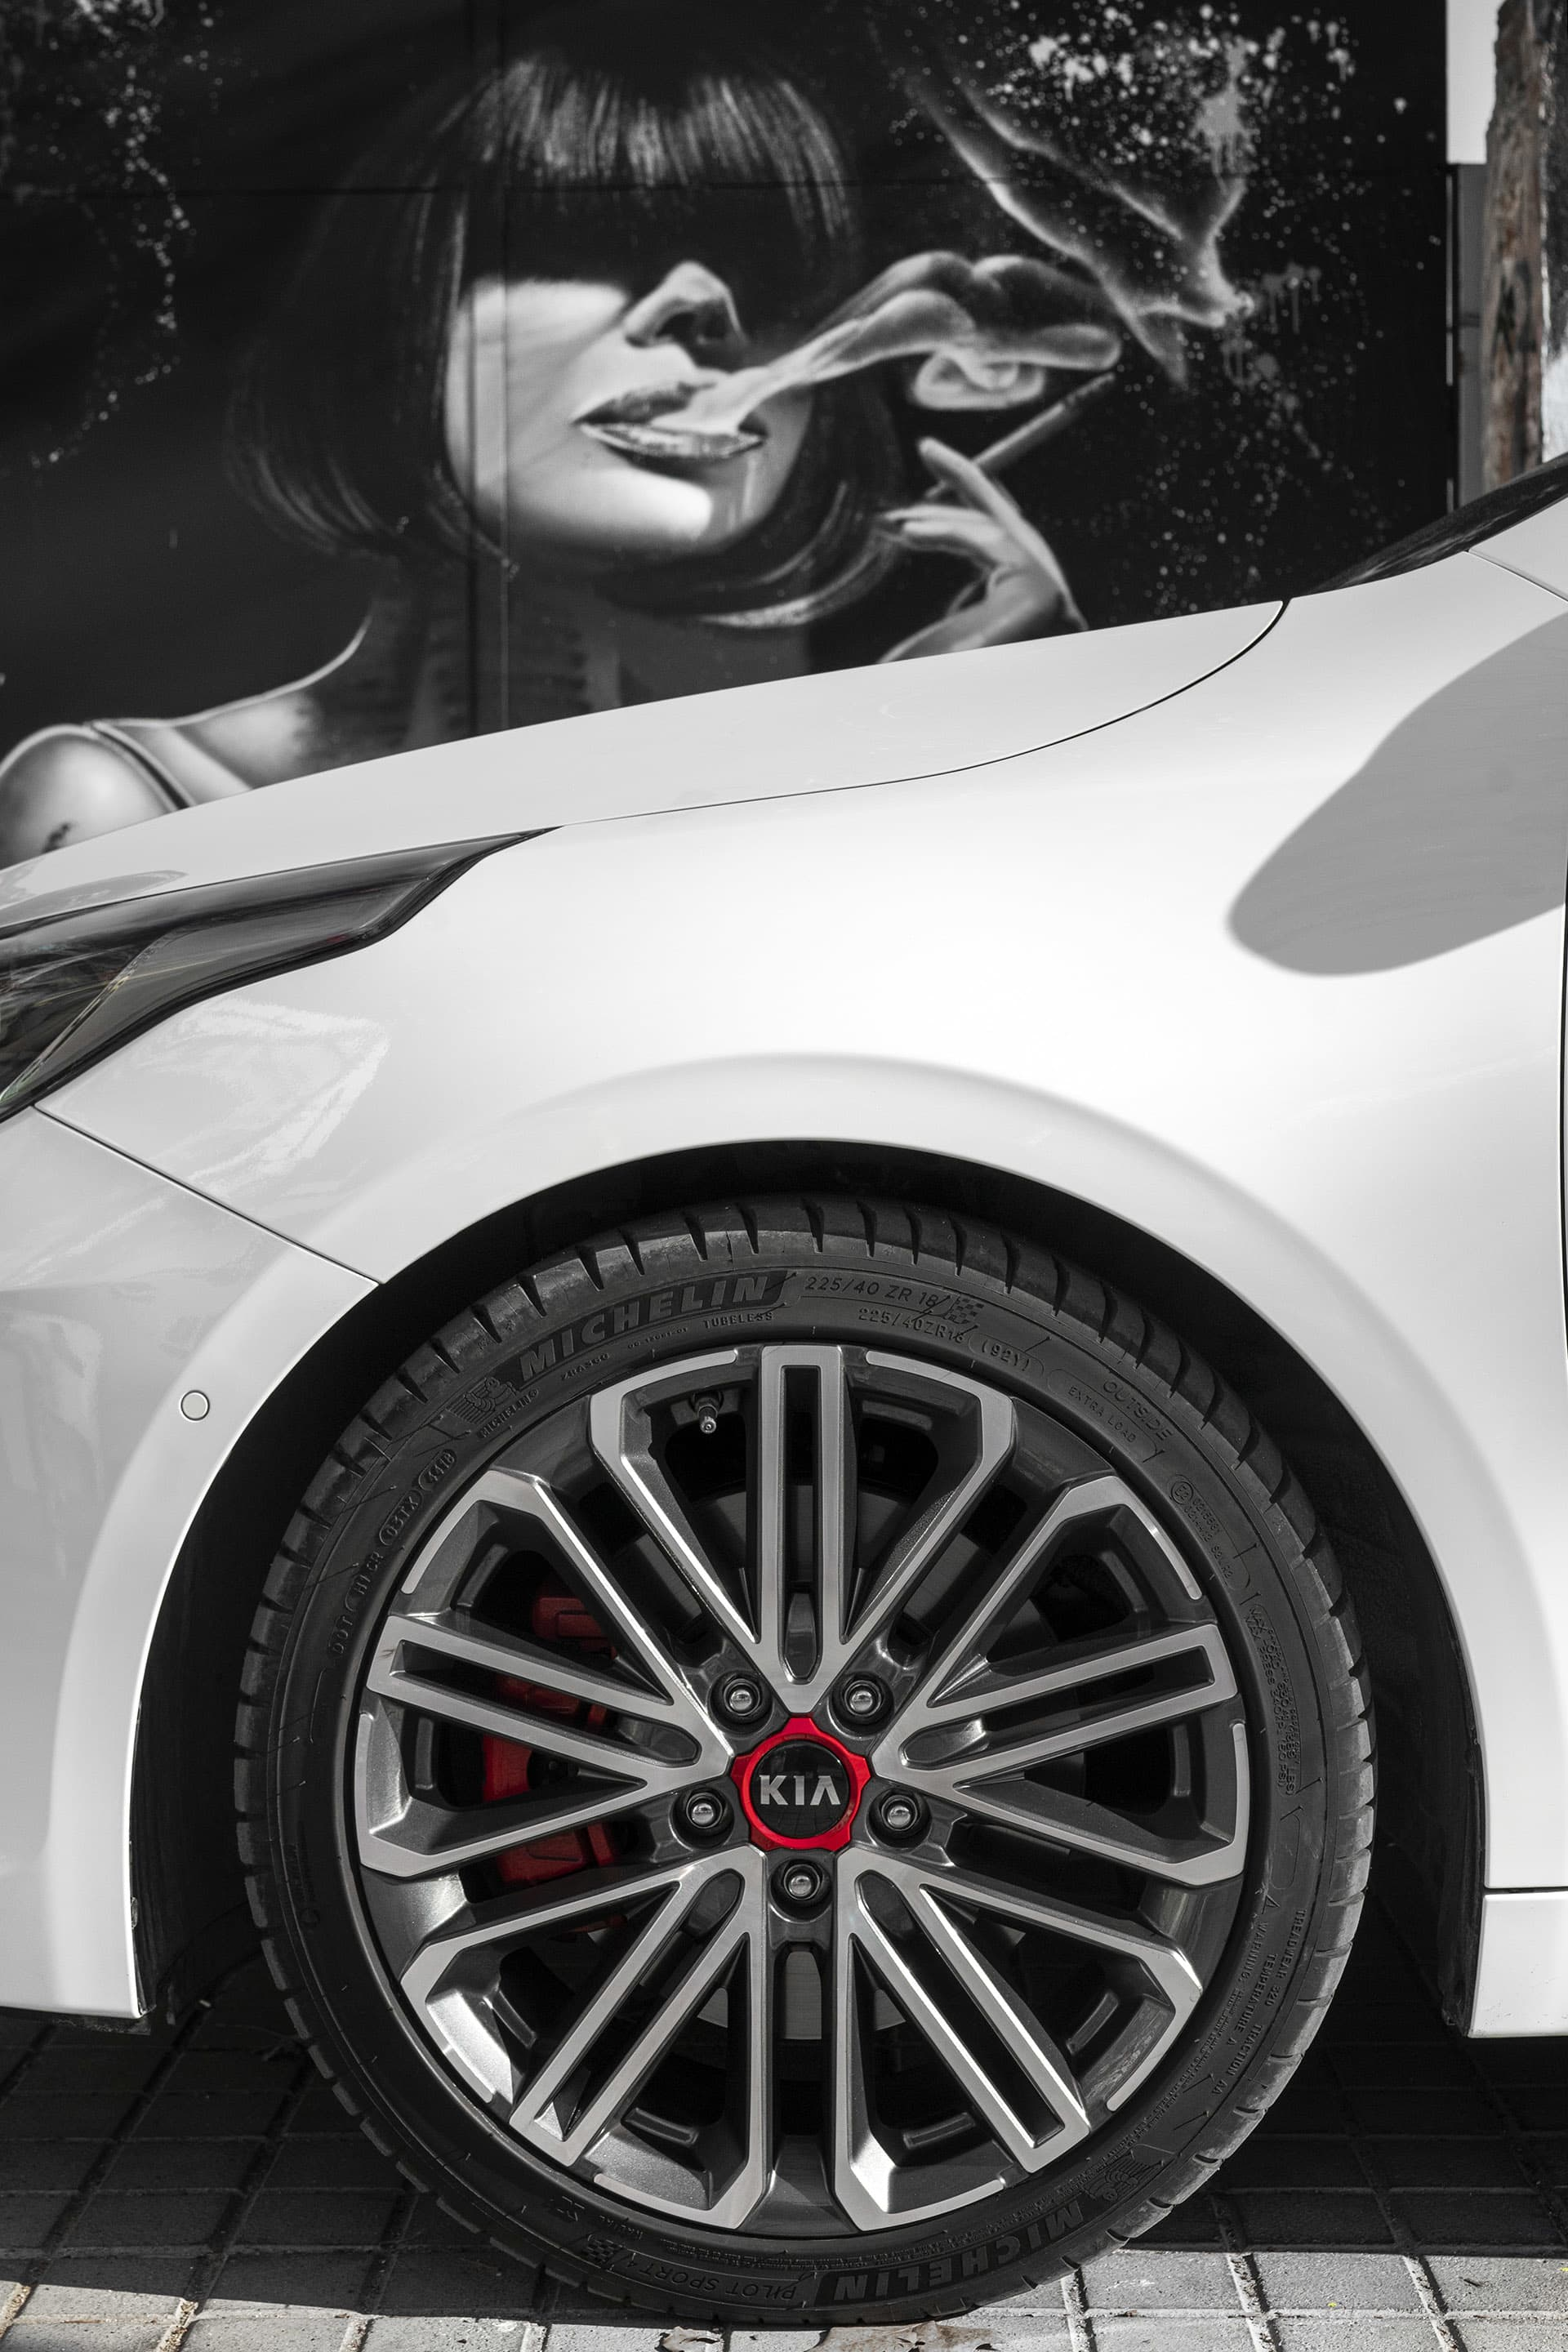 The rims on Proceed are cool, the red center cup matches the red brake calipers.